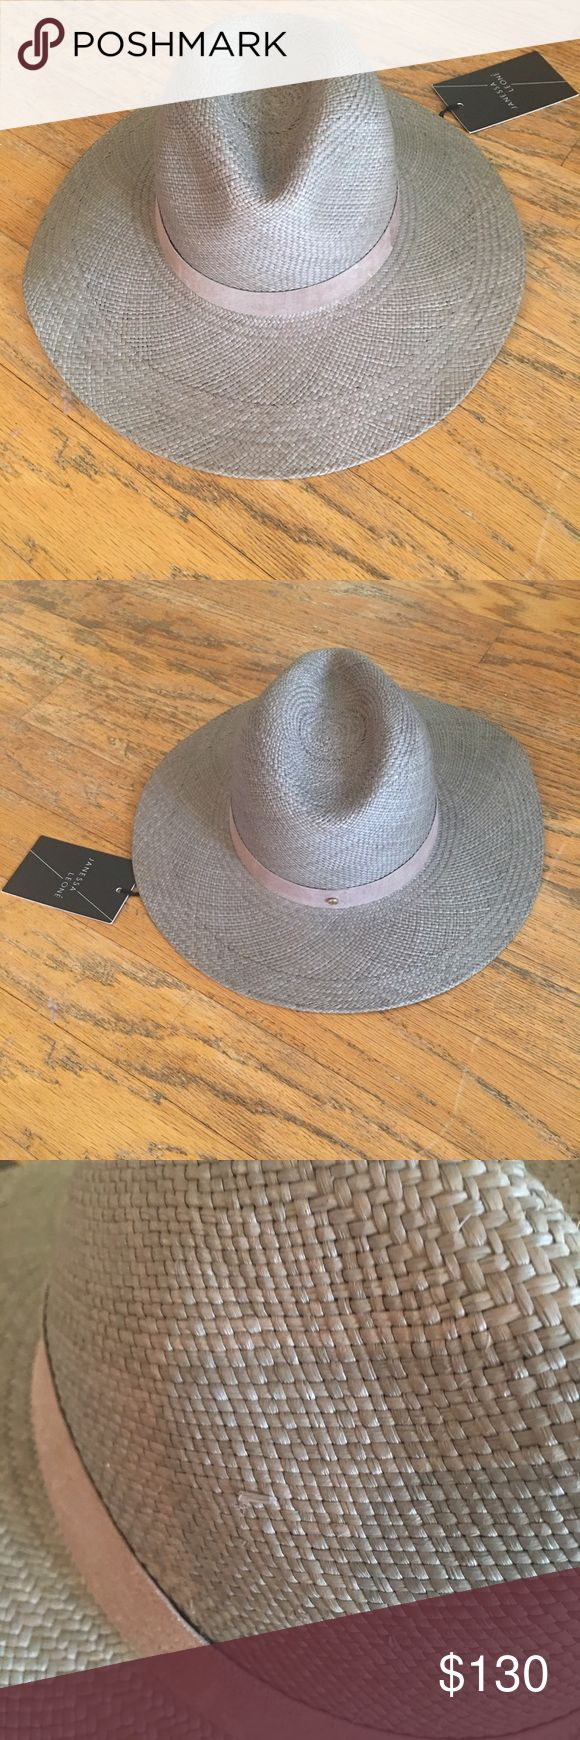 Janessa Leone NWT Angelica wide brimmed Panama hat Vanessa Leone hat in silver sage, 100% straw with suede band. NWT. Tiny defect in straw seen in close up pic. janessa leone Accessories Hats